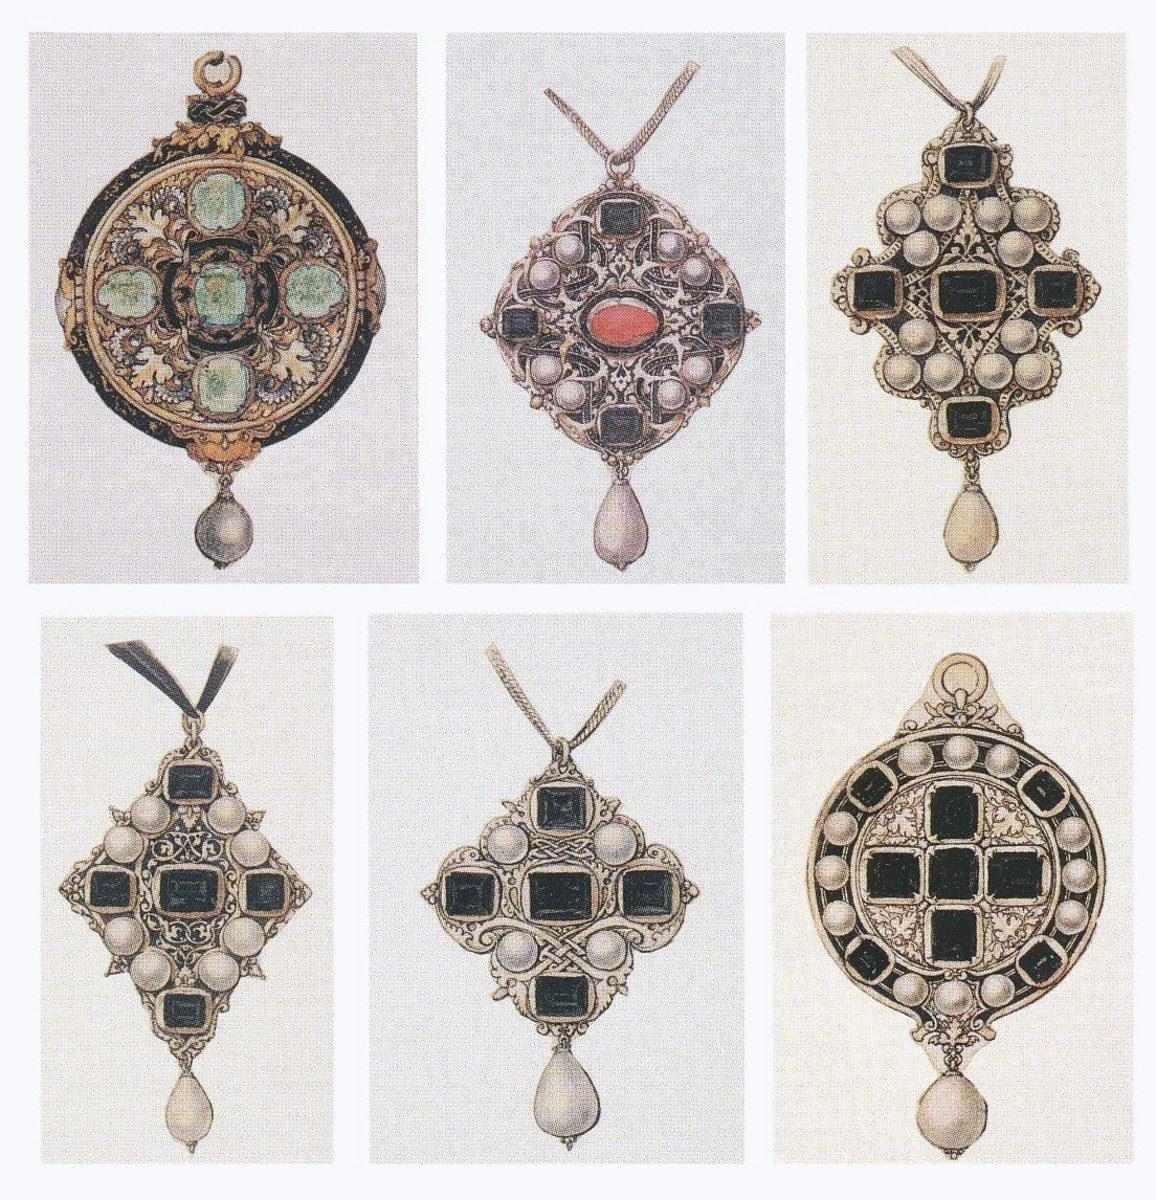 Original designs for Tudor jewelry.